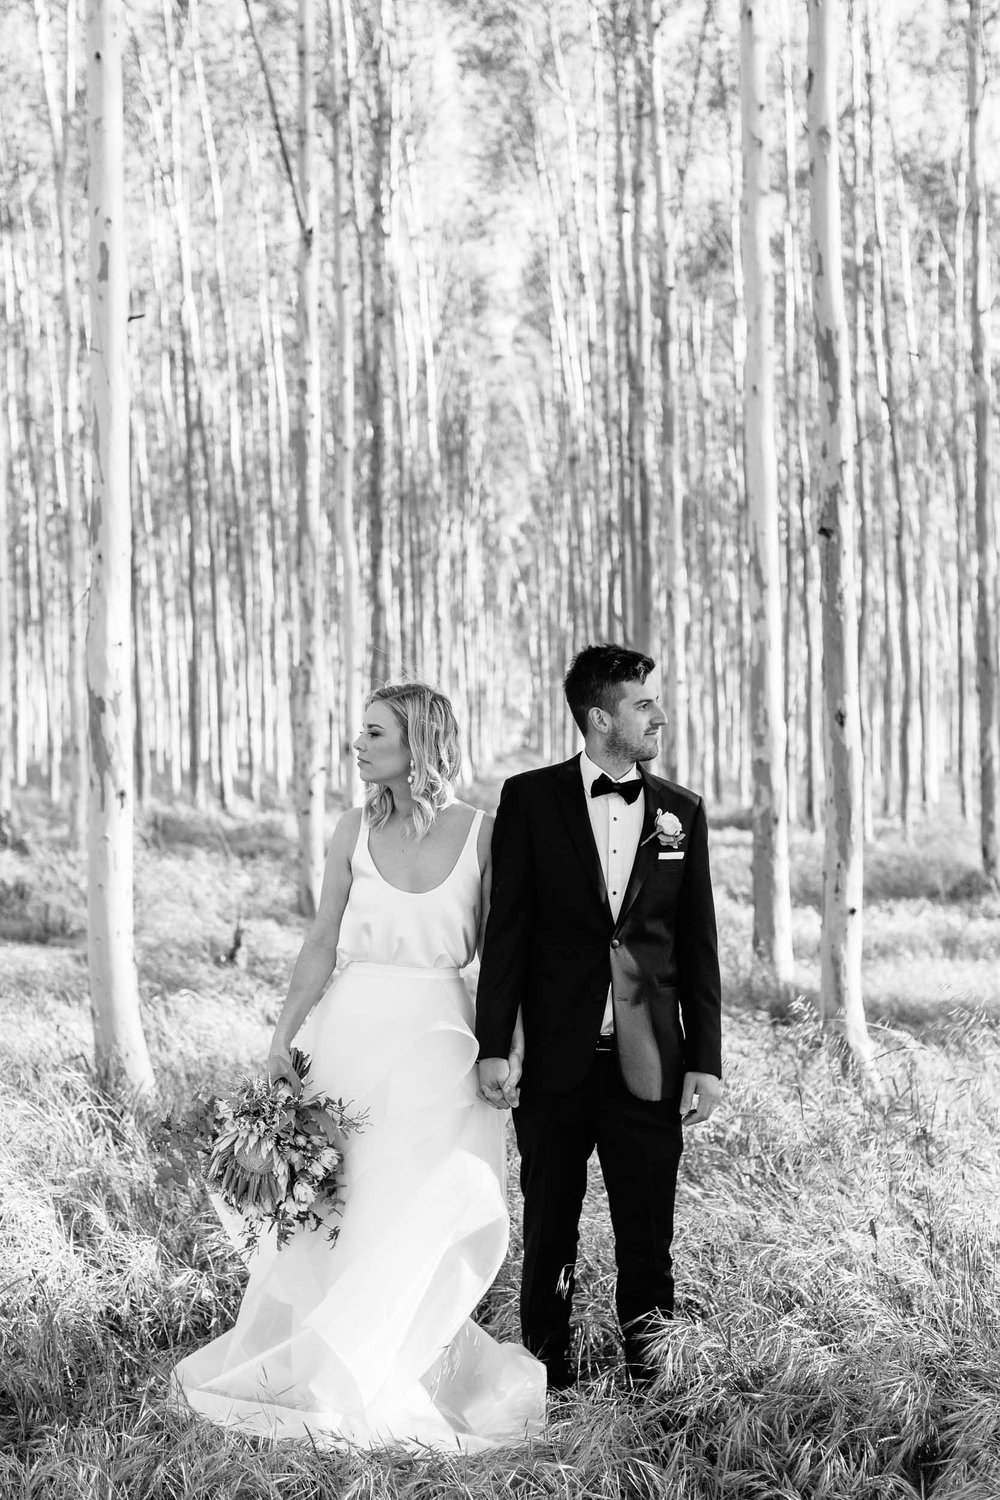 Kas-Richards-Wedding-Photographer-Country-Winery-Wedding-One-Day-Bridal-Gown-53.jpg